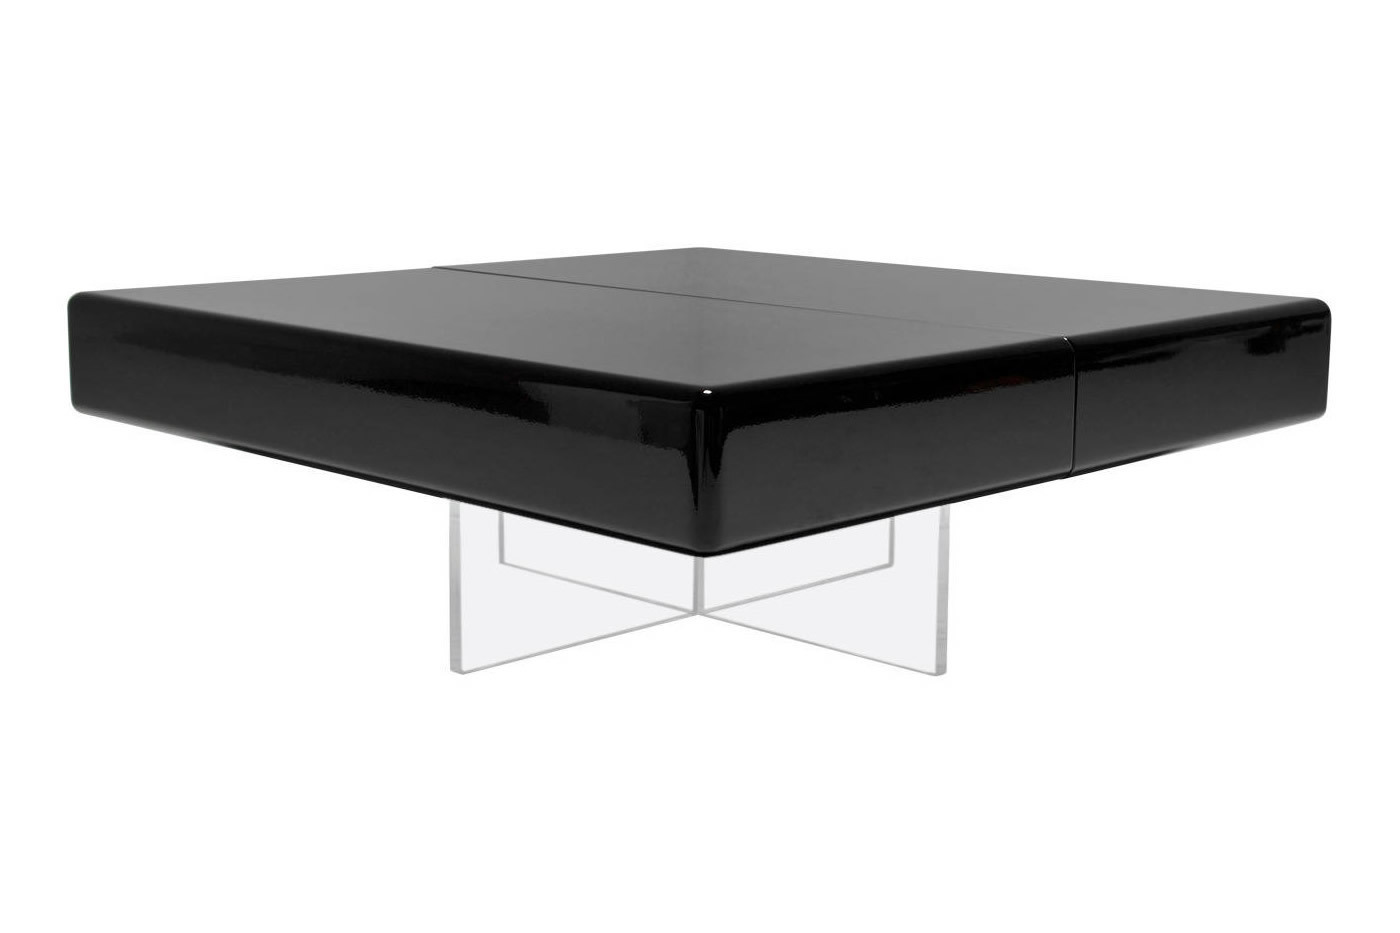 - Black Lacquer 1970's Coffee Table With Perspex Base Vinterior